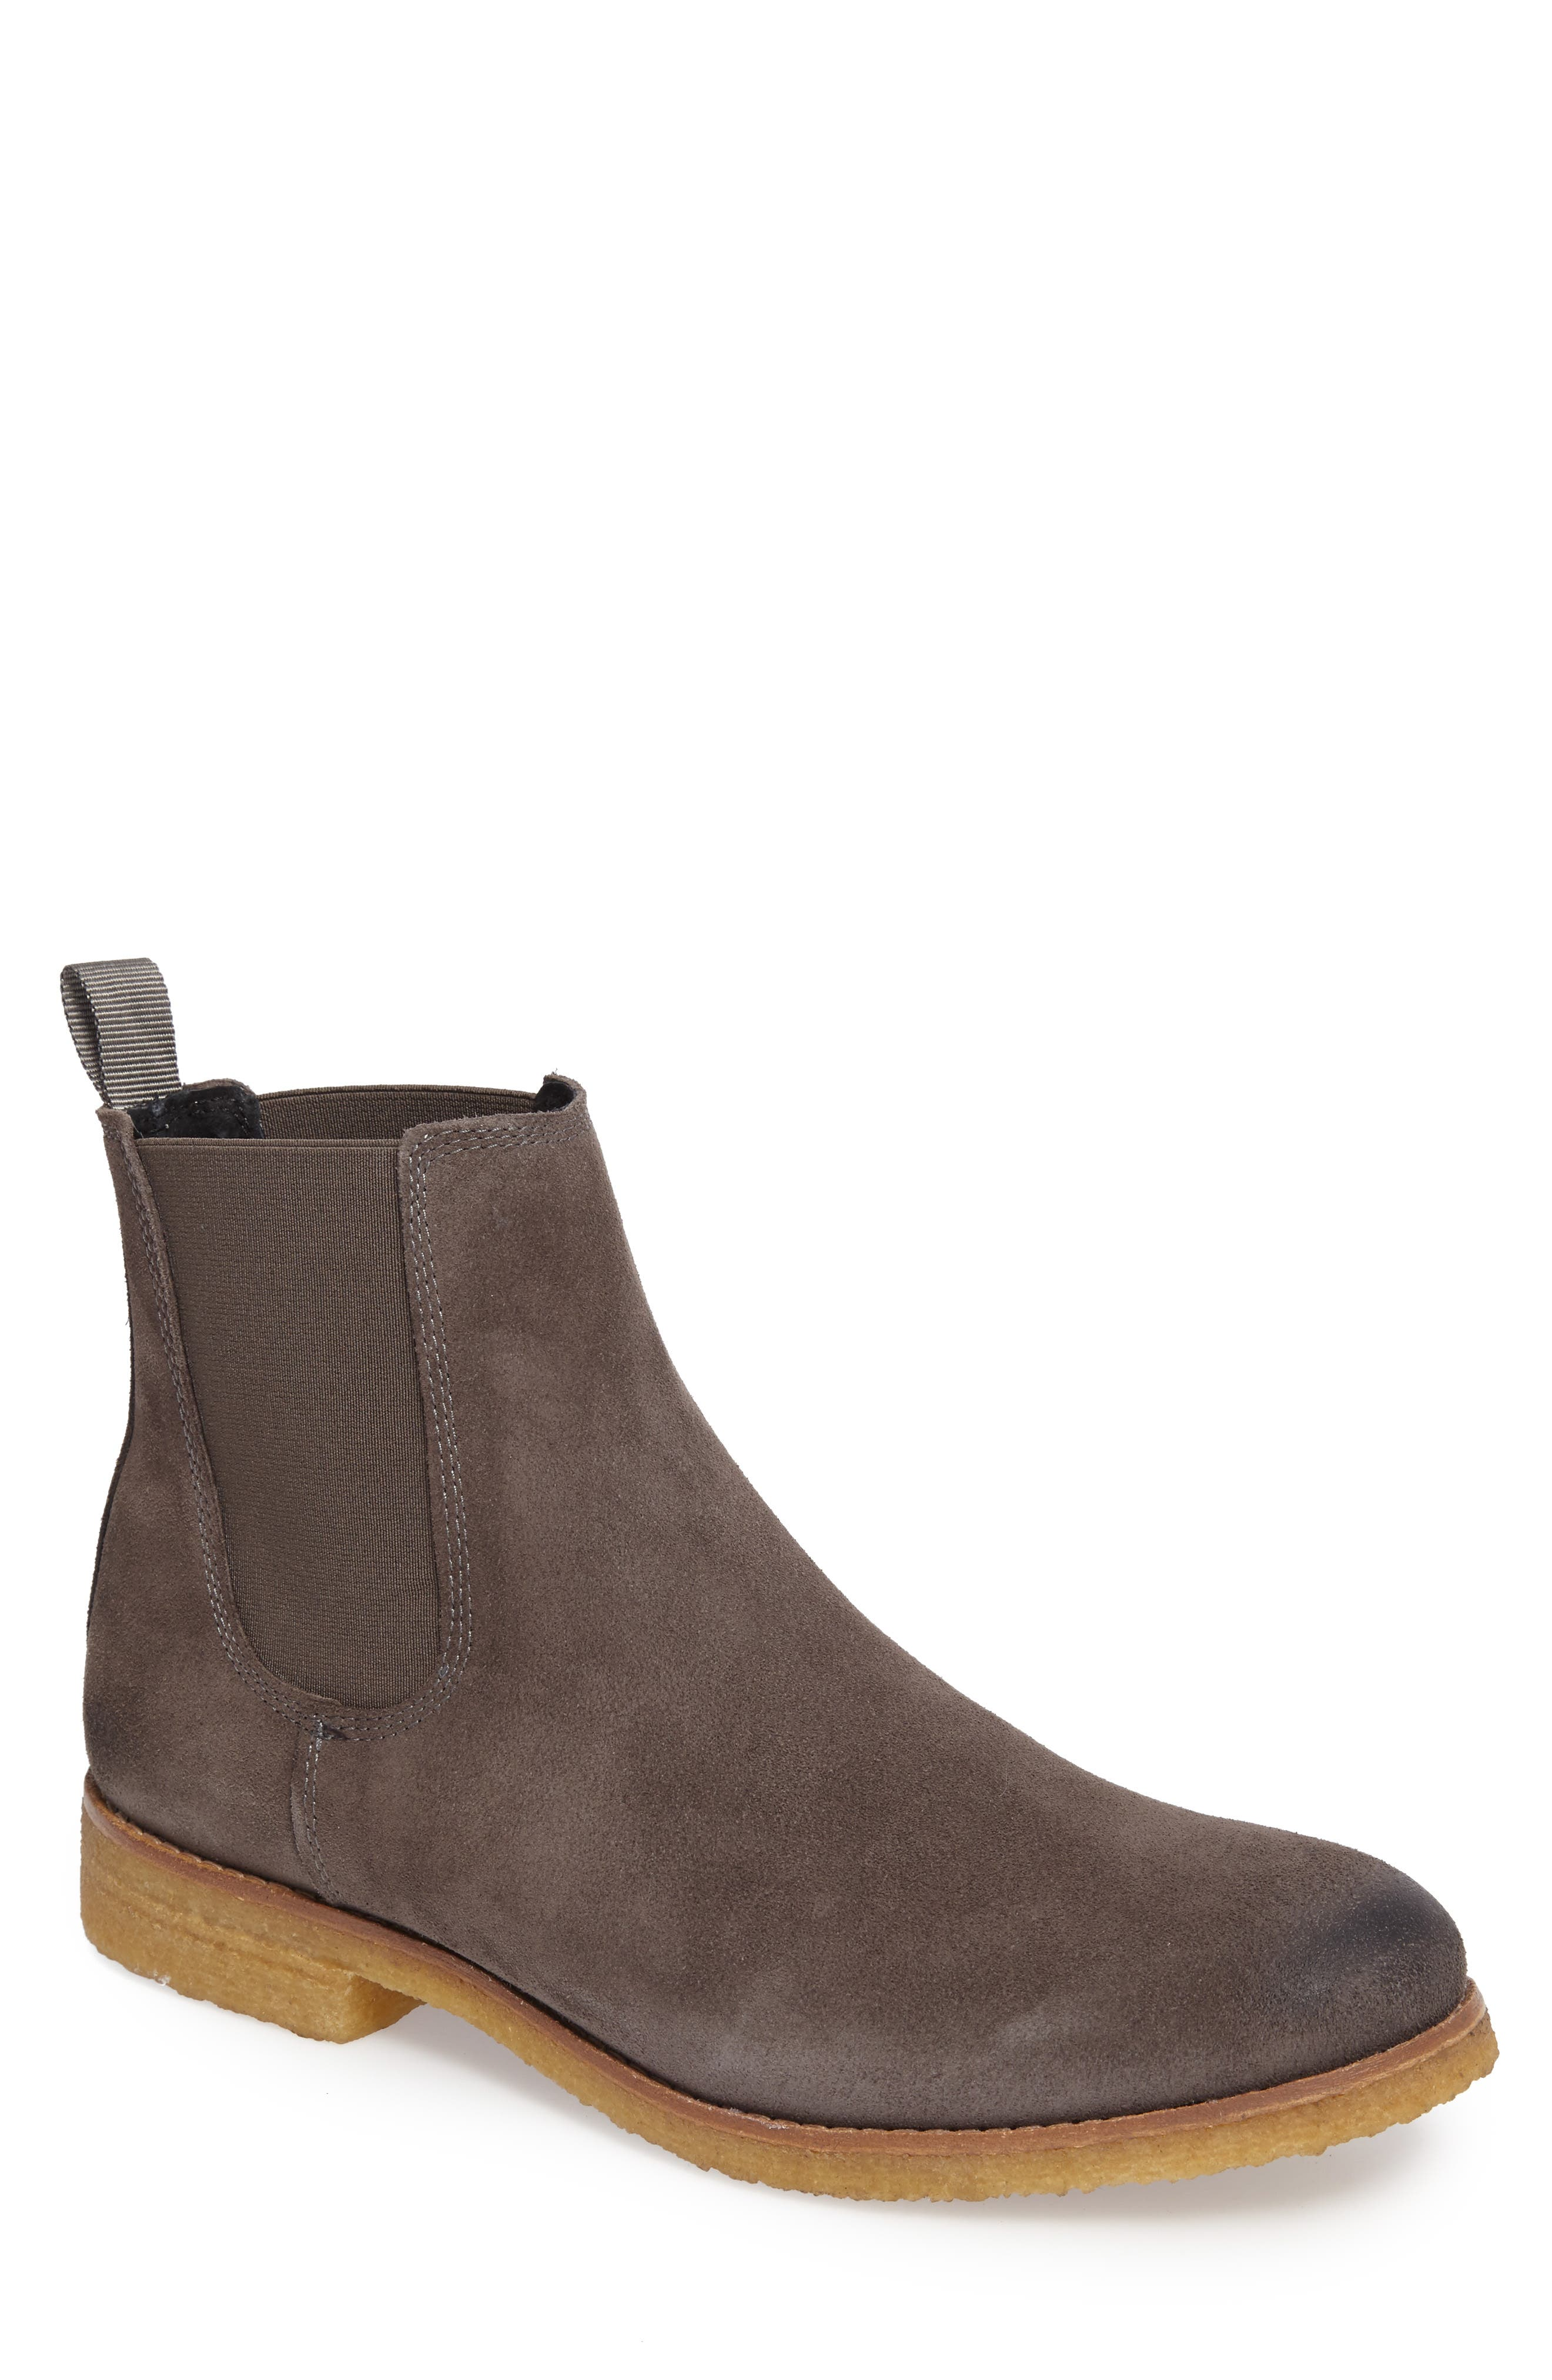 SUPPLY LAB Jared Chelsea Boot in Grey Suede